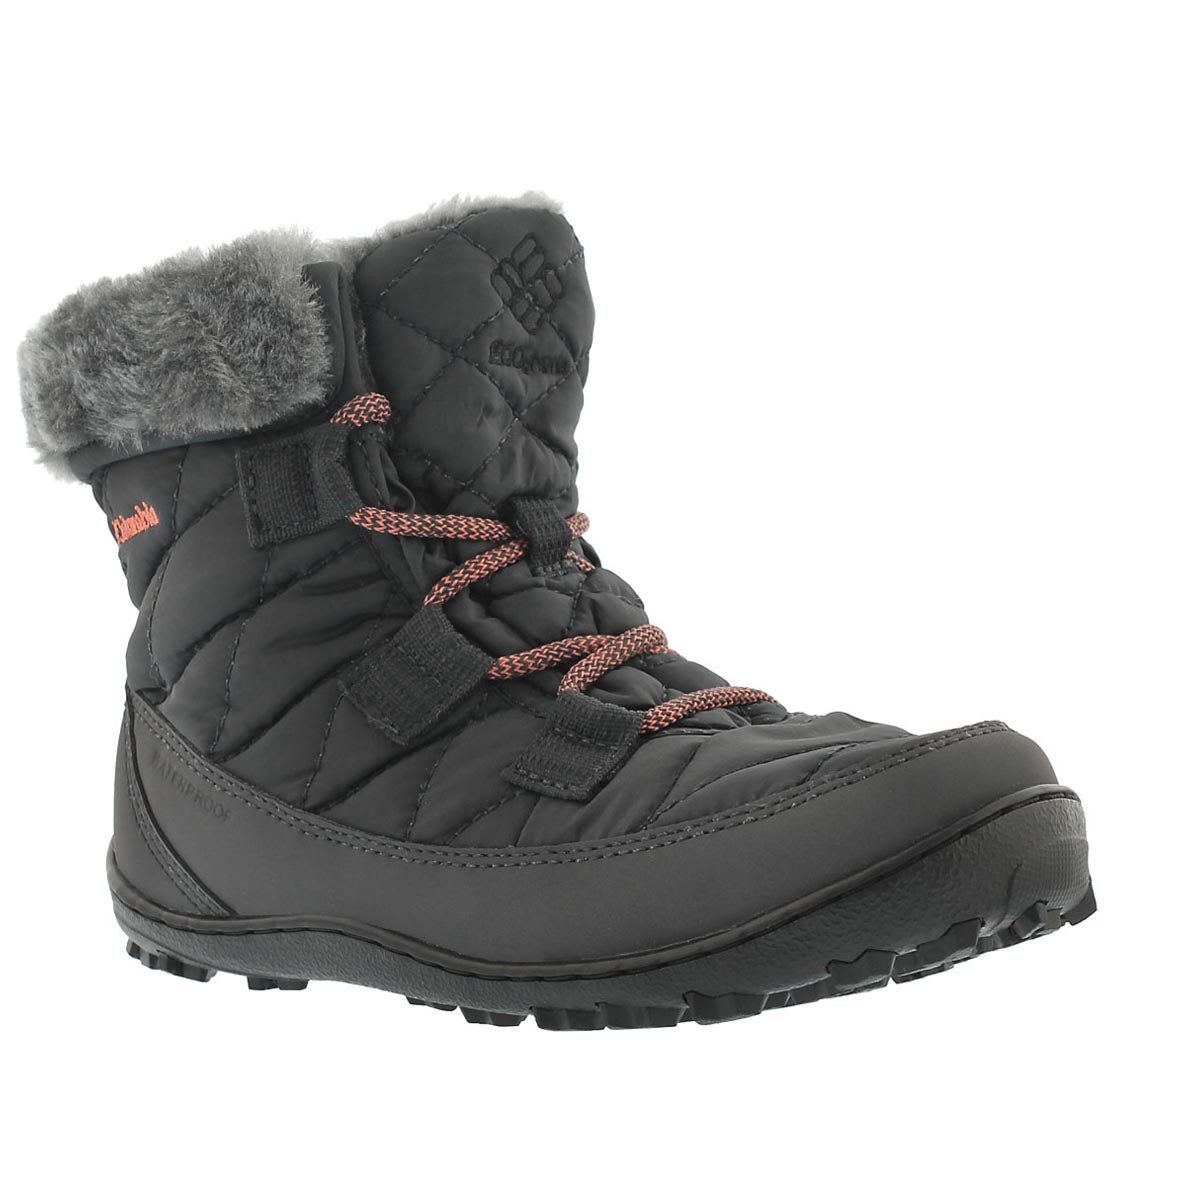 Girls' MINX SHORTY shark winter boots